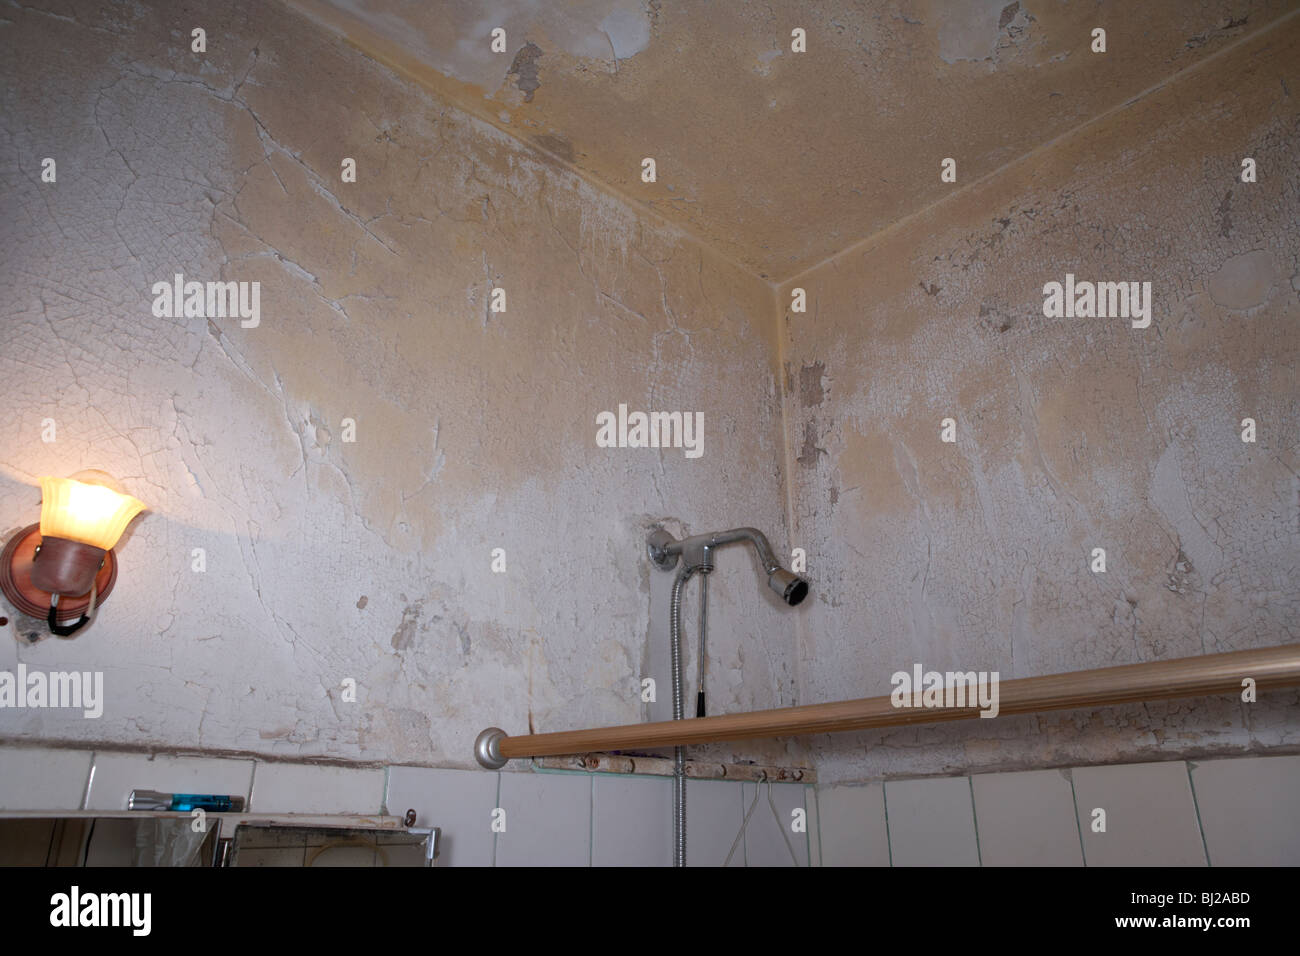 peeling paint on the ceiling above the shower in a run down bathroom Stock Photo